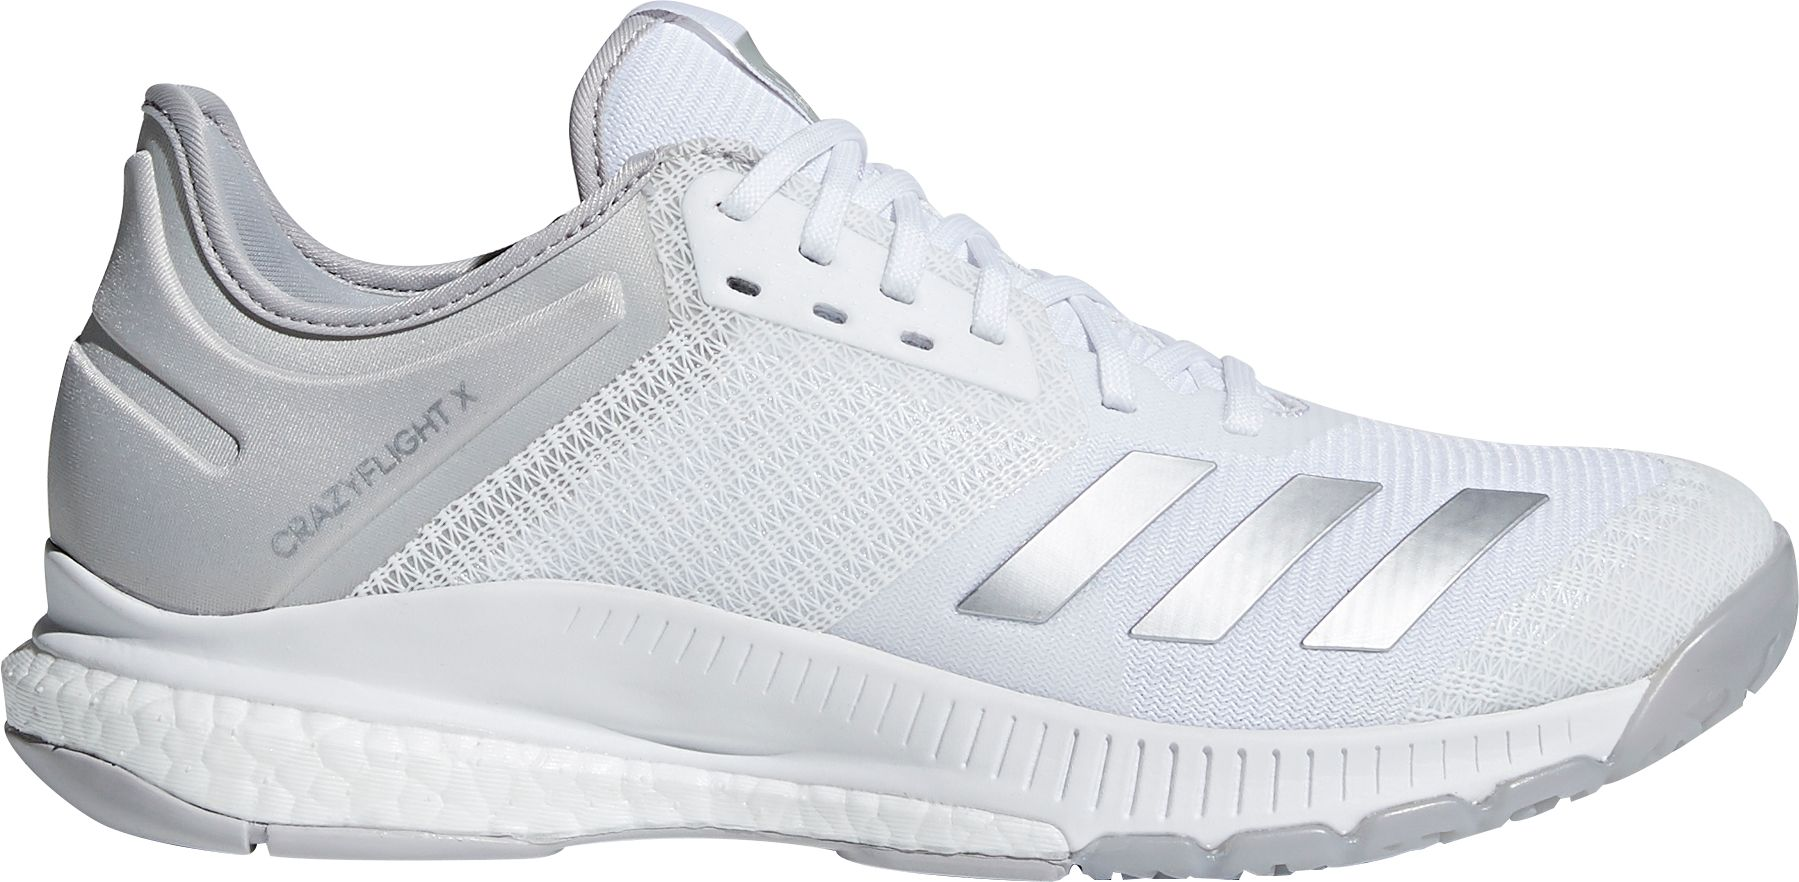 pretty nice f6768 5317c adidas Womens Crazyflight x 2.0 Volleyball Shoes, White